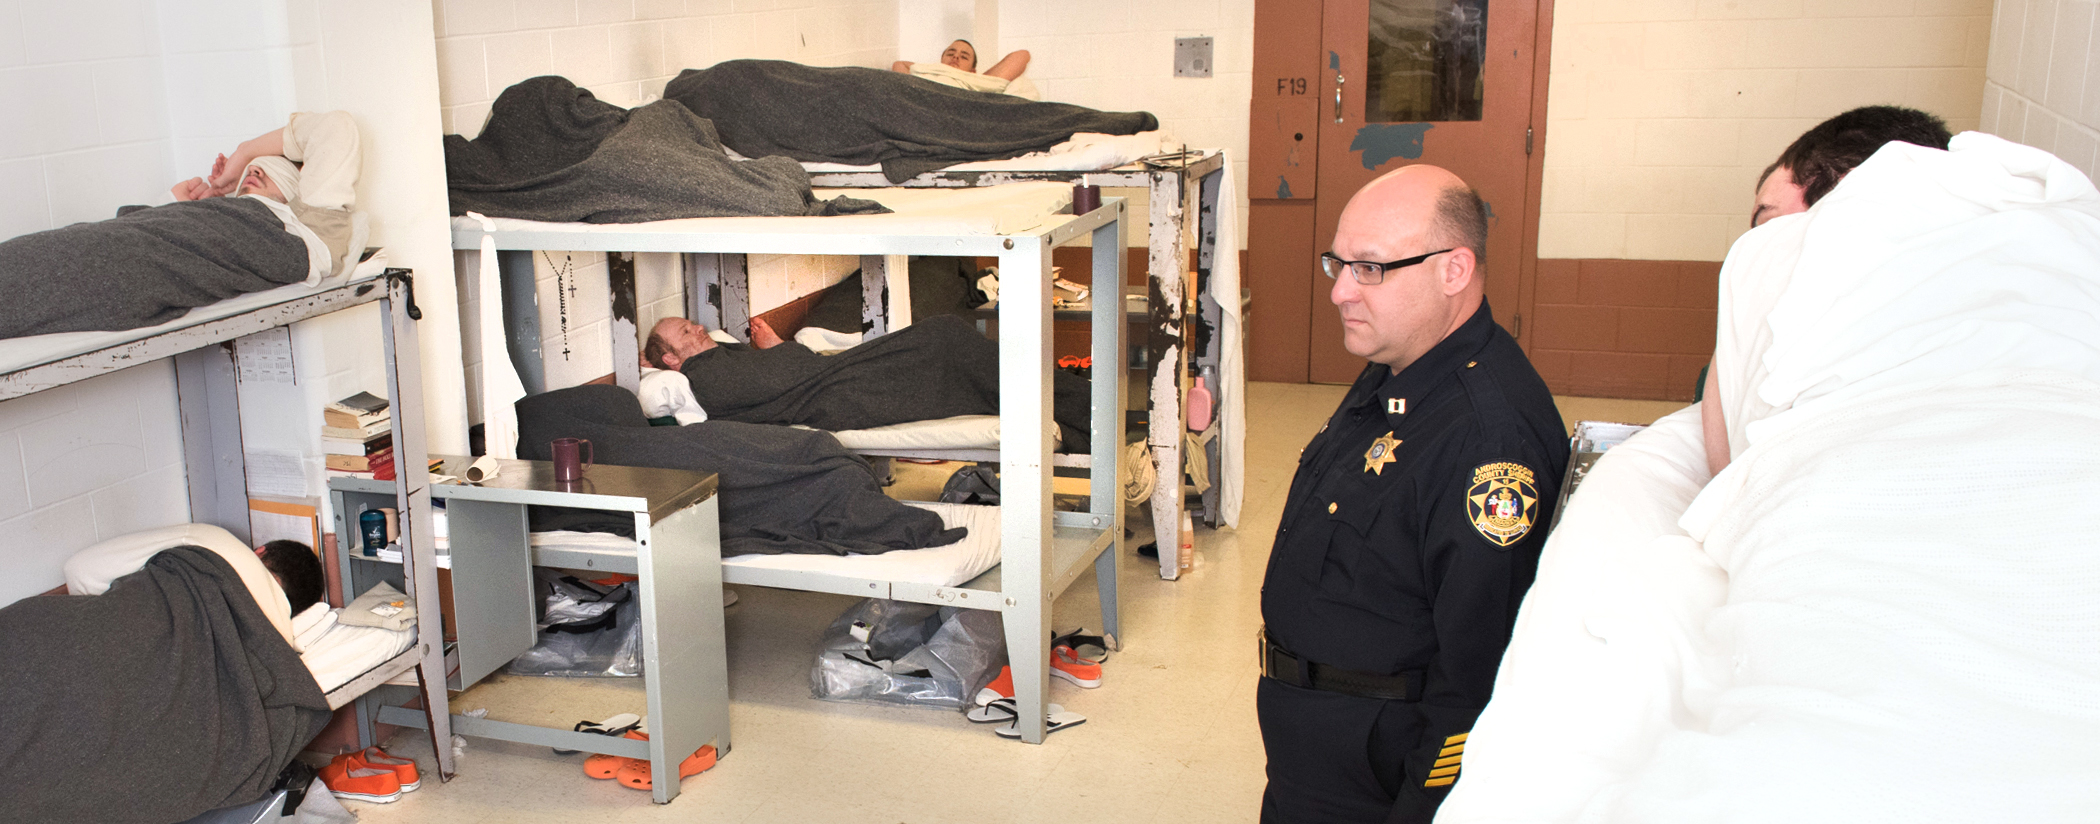 Inmate population at Androscoggin jail to jump | Lewiston